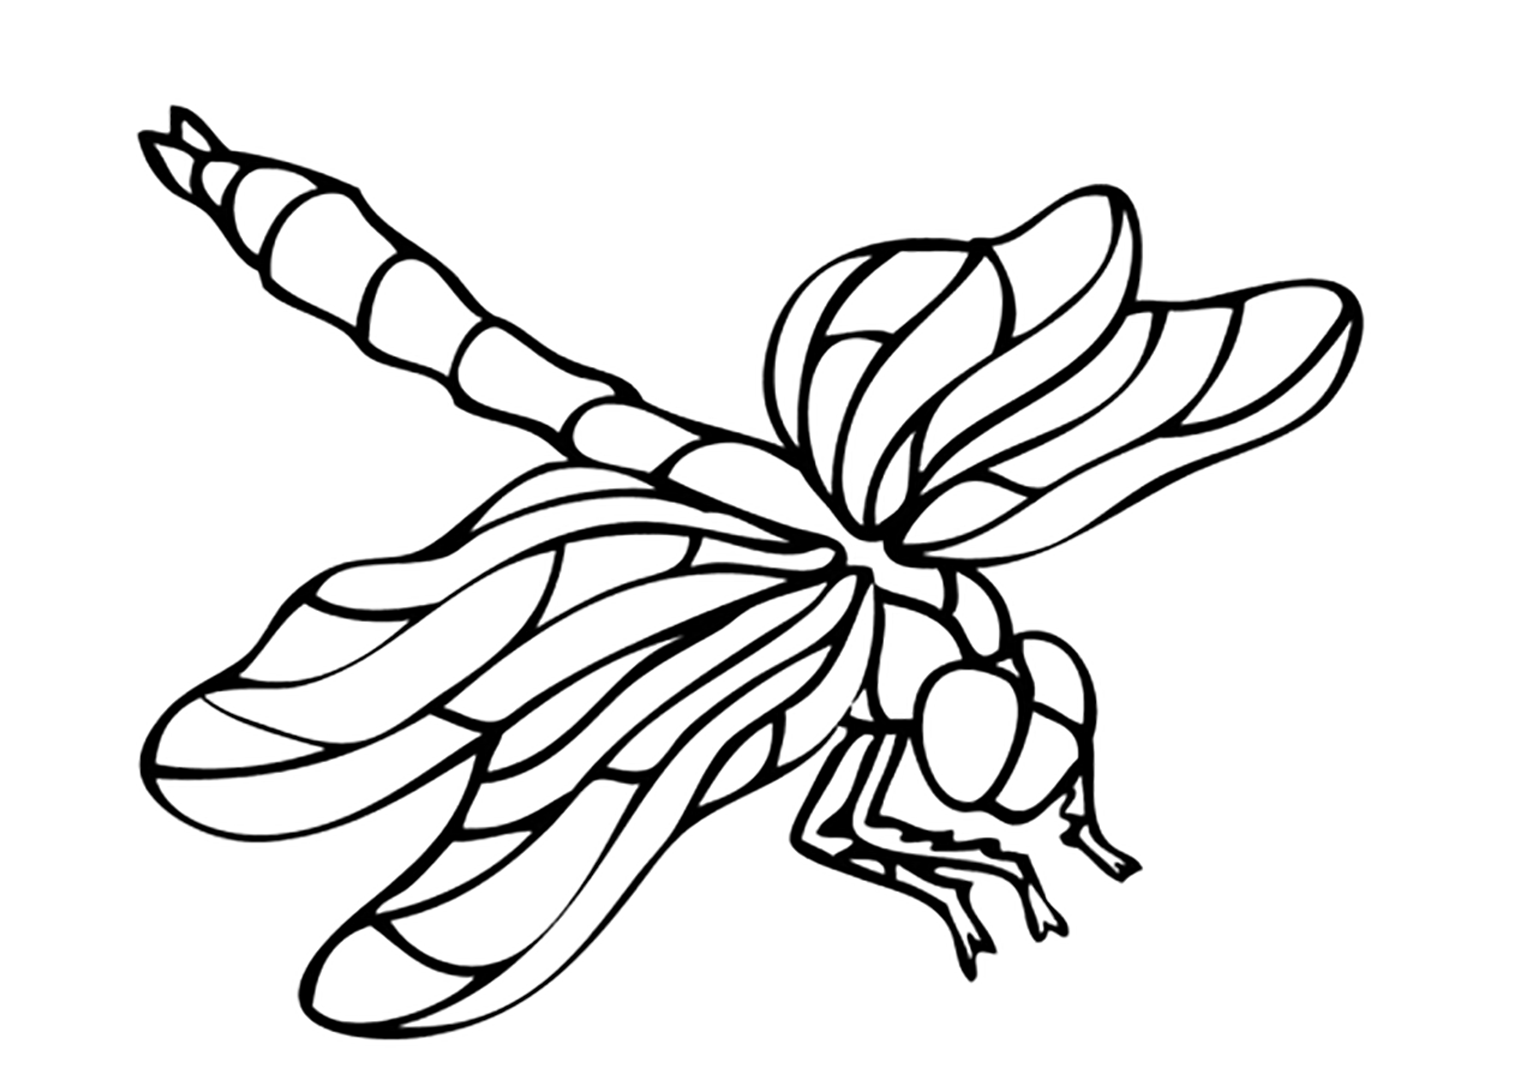 Simple free Insects coloring page to print and color